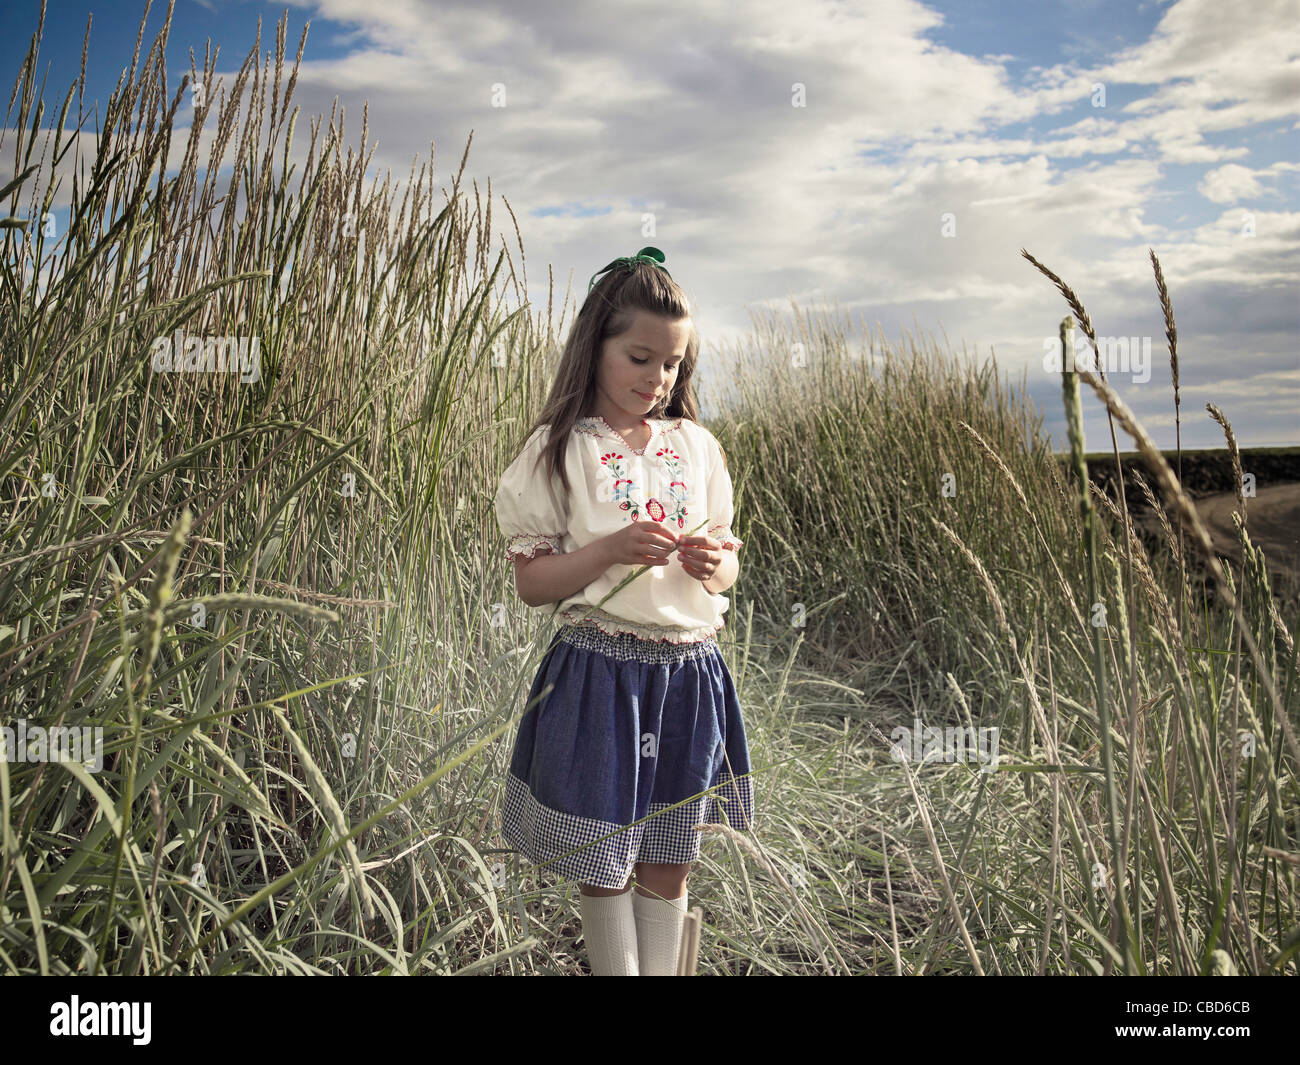 Girl playing in wheatfield - Stock Image